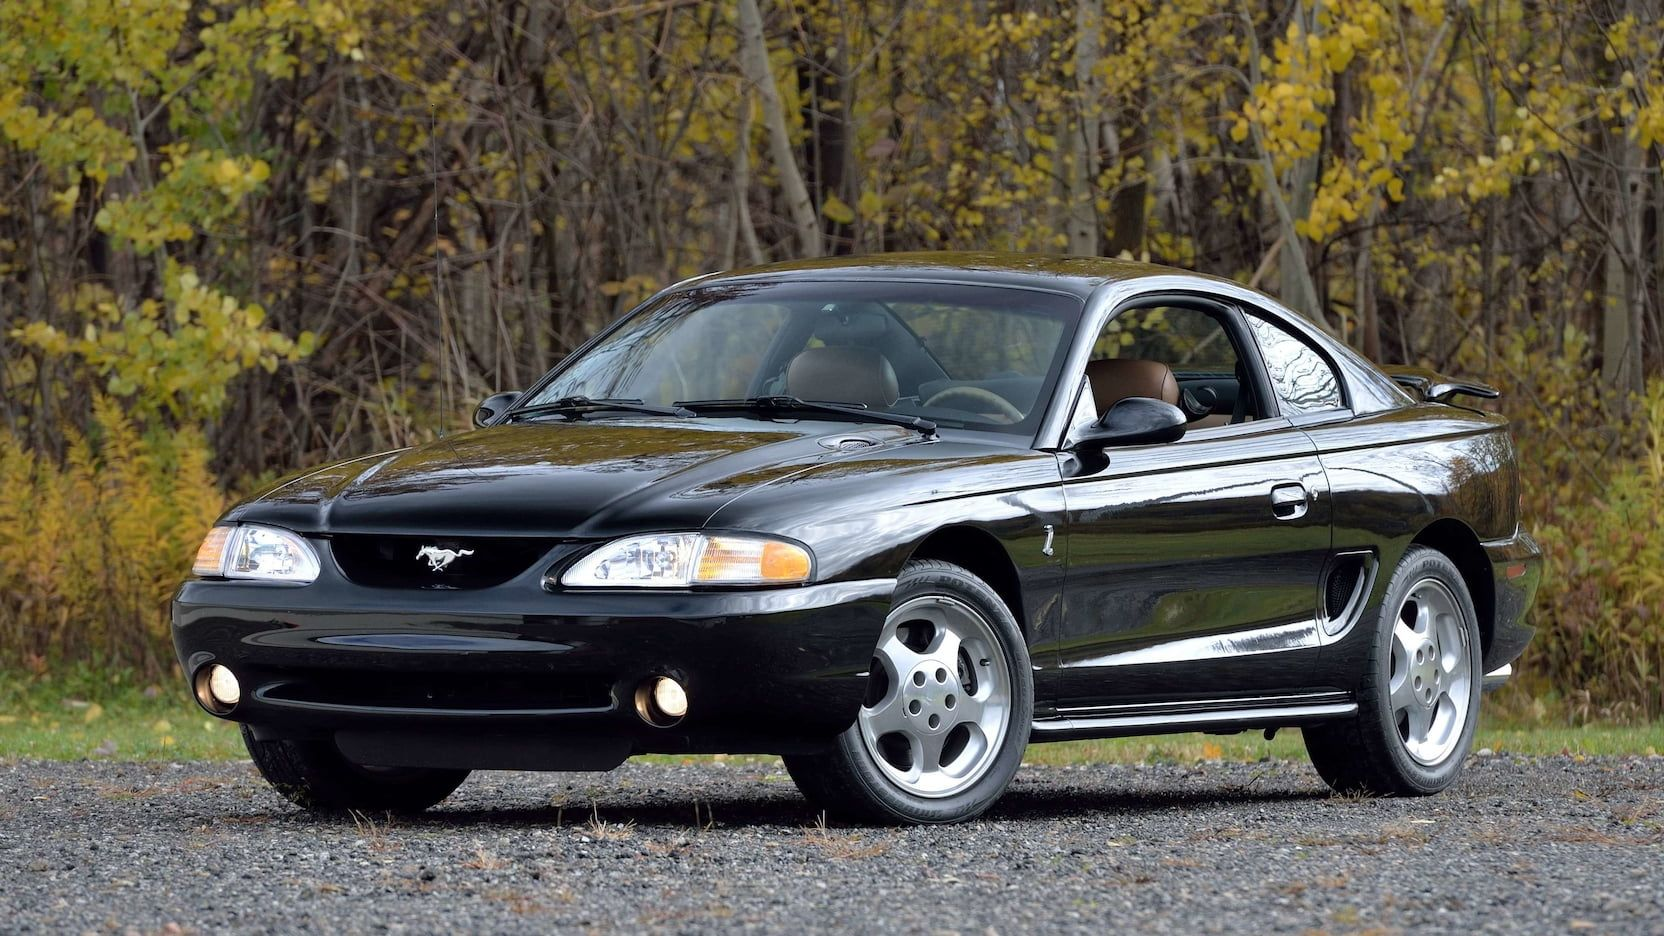 1994 Ford Mustang Svt Cobra Presented As Lot F194 At Kissimmee Fl Ford Mustang Mustang Sn95 Mustang